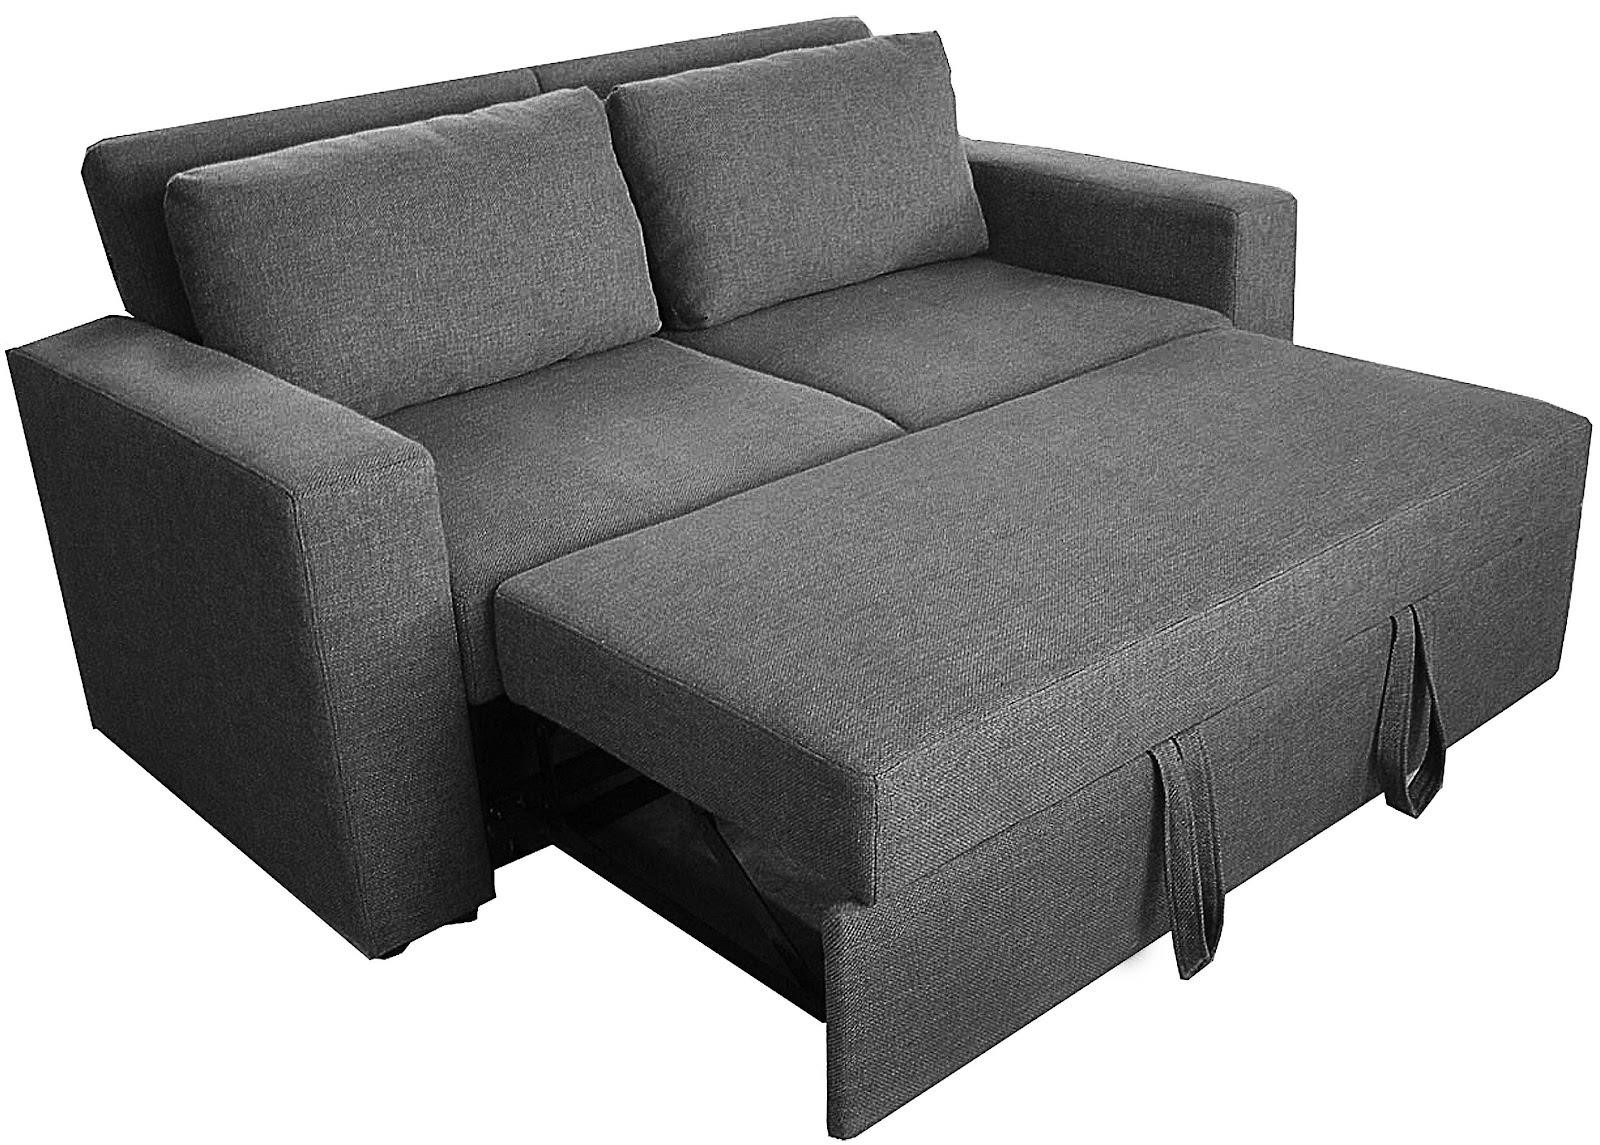 latest pull out sofa chairs pertaining to sofa loveseat with pull out bed trundle beds pull out couches